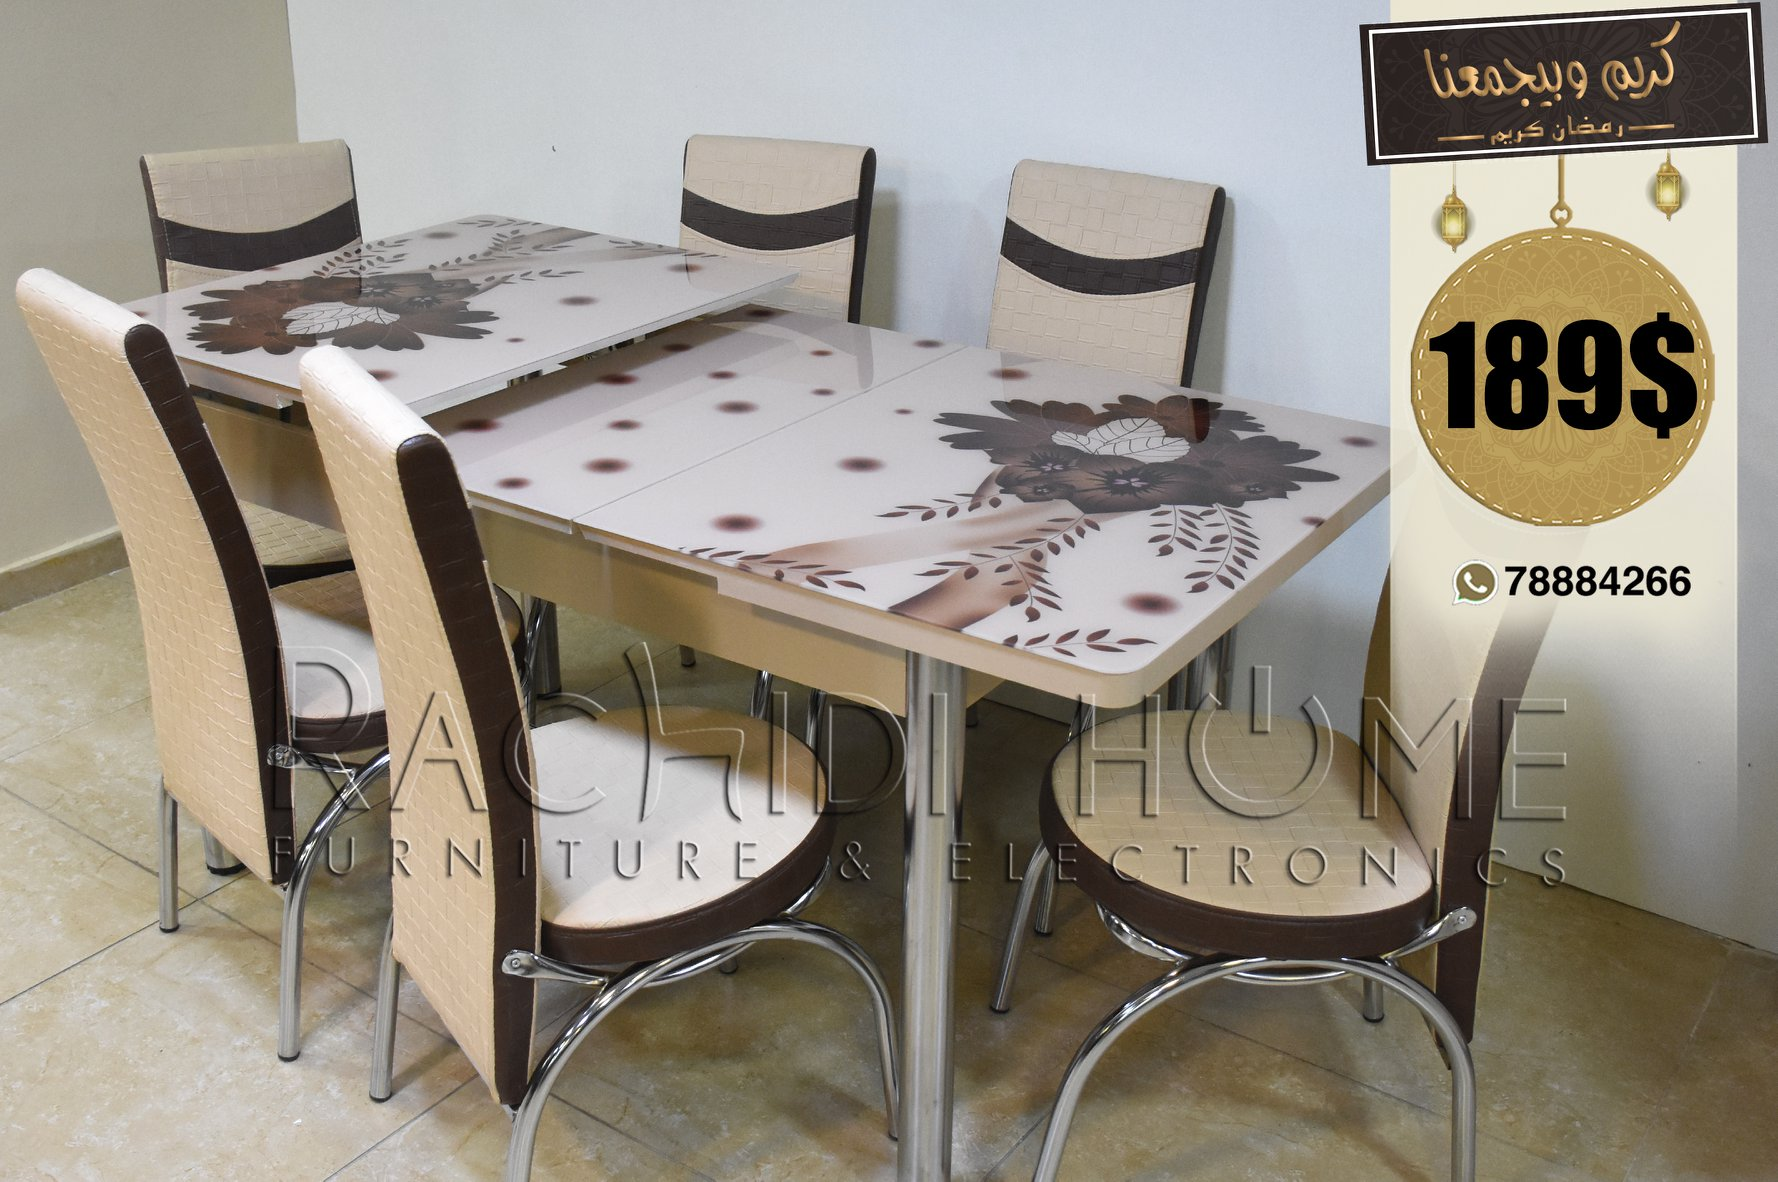 Dining Table set | HOME & GARDEN,Home furniture,Galerie